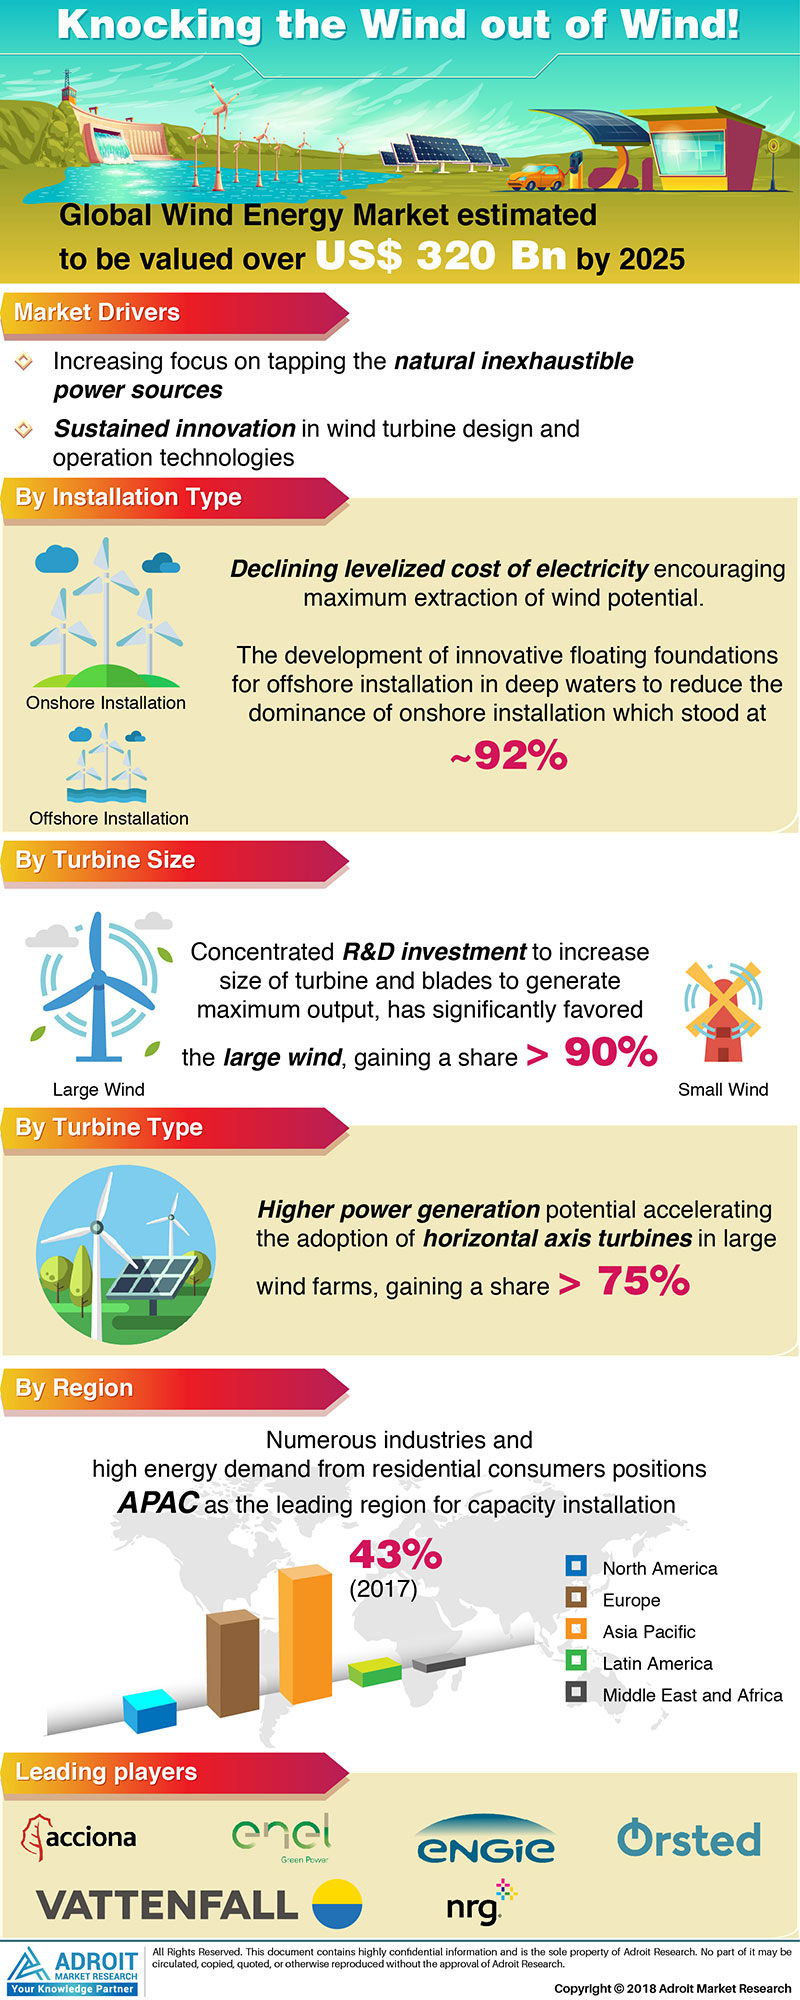 Global Wind Energy Market Size 2017 By Type, Turbine Size, Product, Turbine Type, Region and Forecast 2018 to 2025